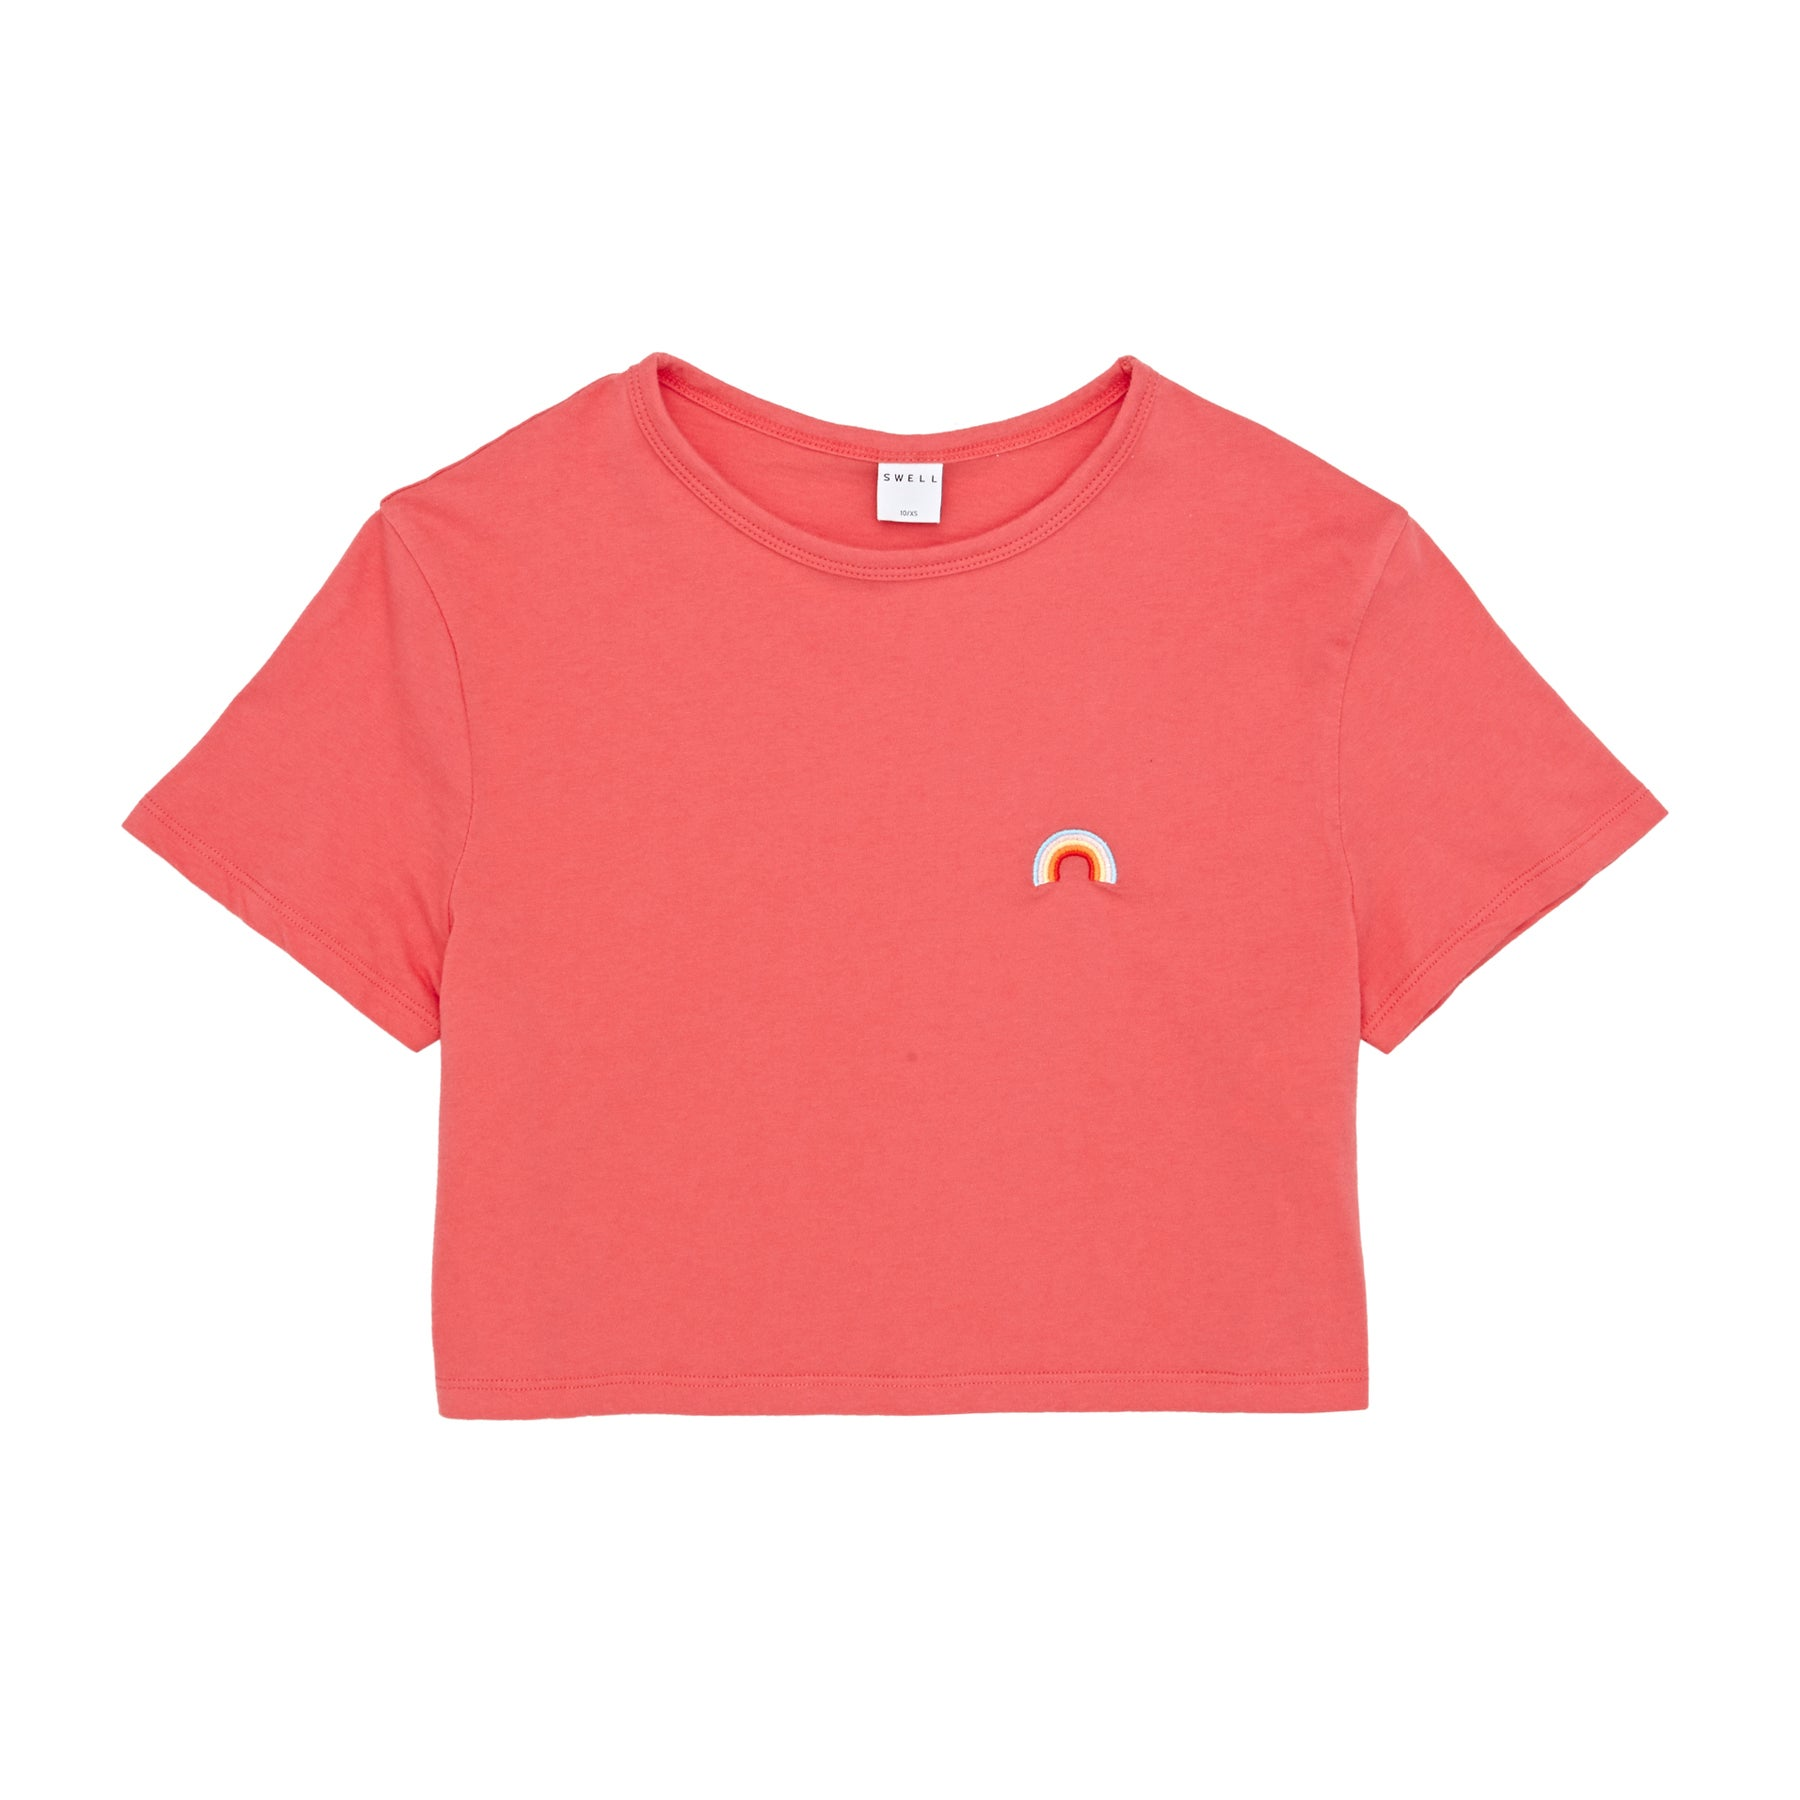 SWELL Rainbow Embroidery Girls Short Sleeve T-Shirt - Coral